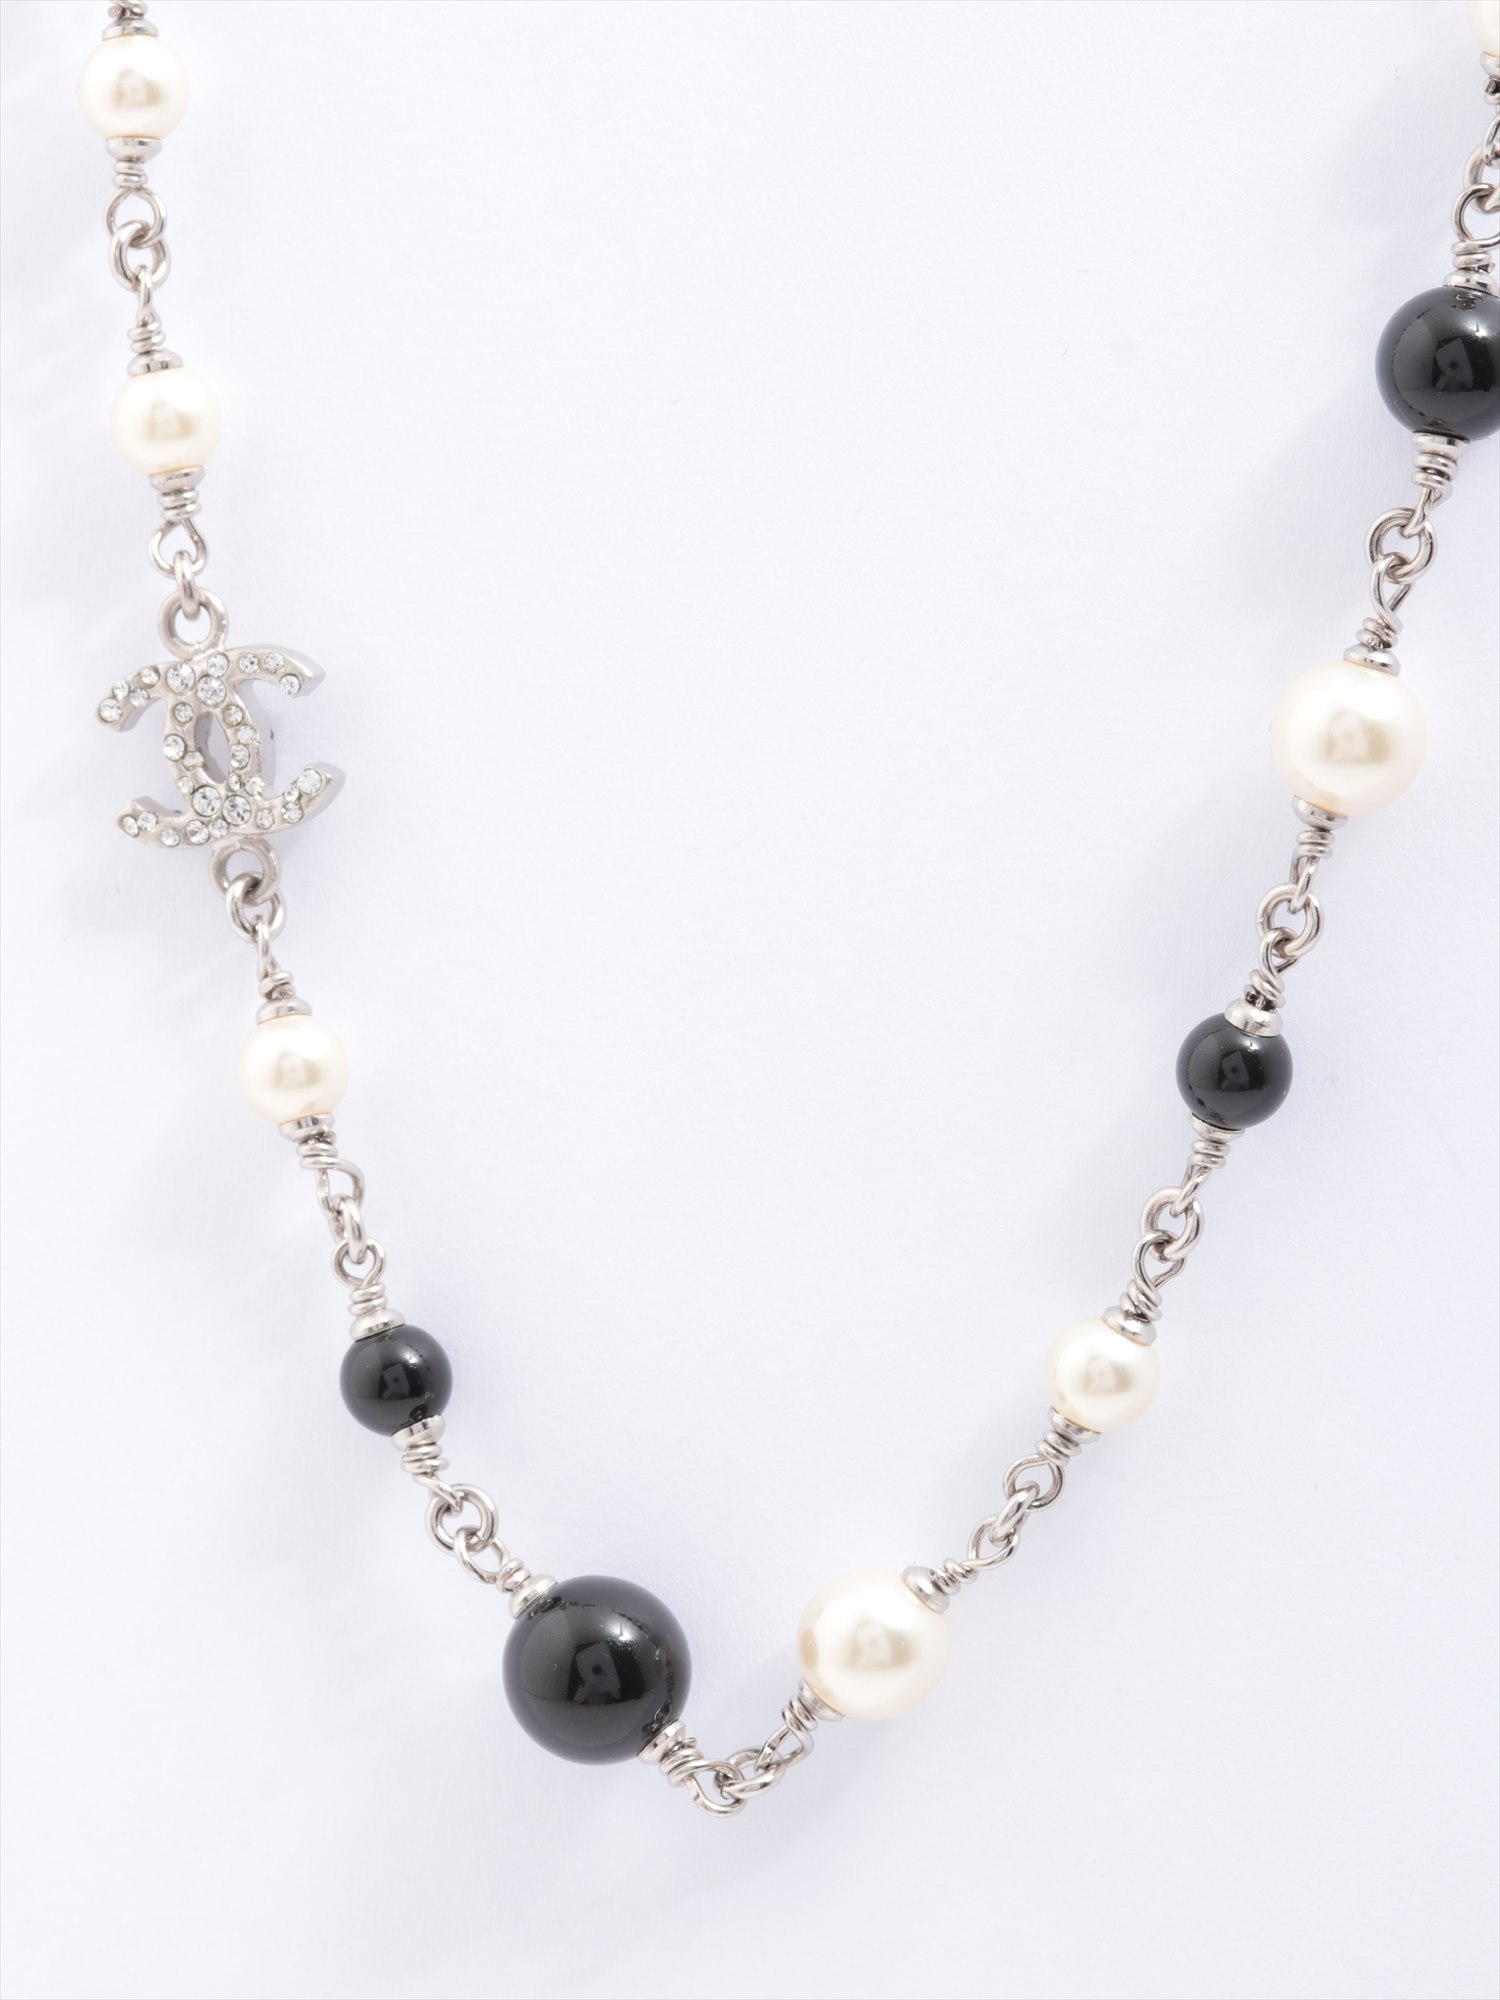 [Used goods] Chanel necklace Long metal material silver faux pearl rhinestone B11P